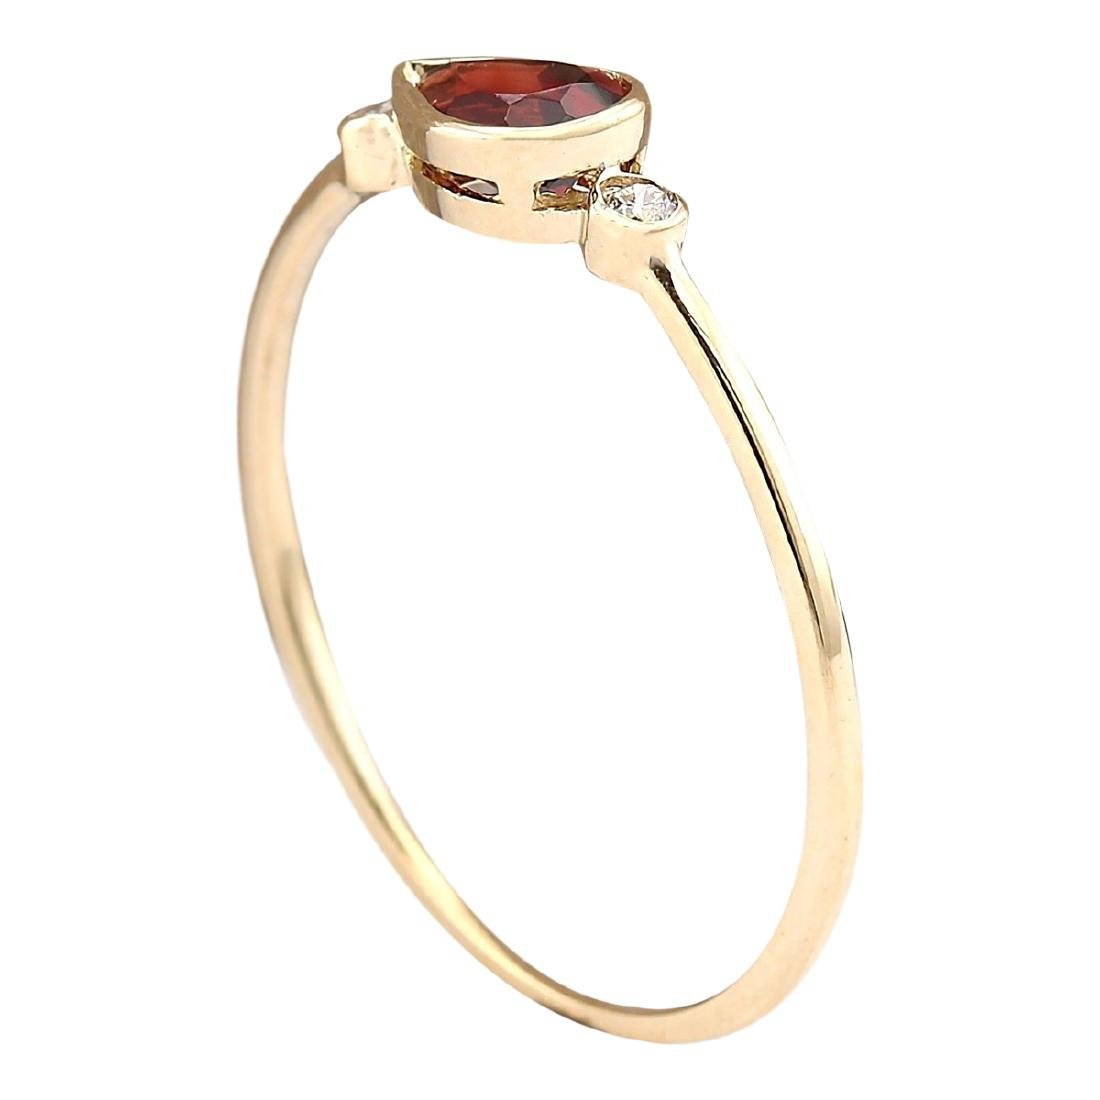 0.56 CTW Natural Rhodolite Garnet Ring In 18K Yellow - 3